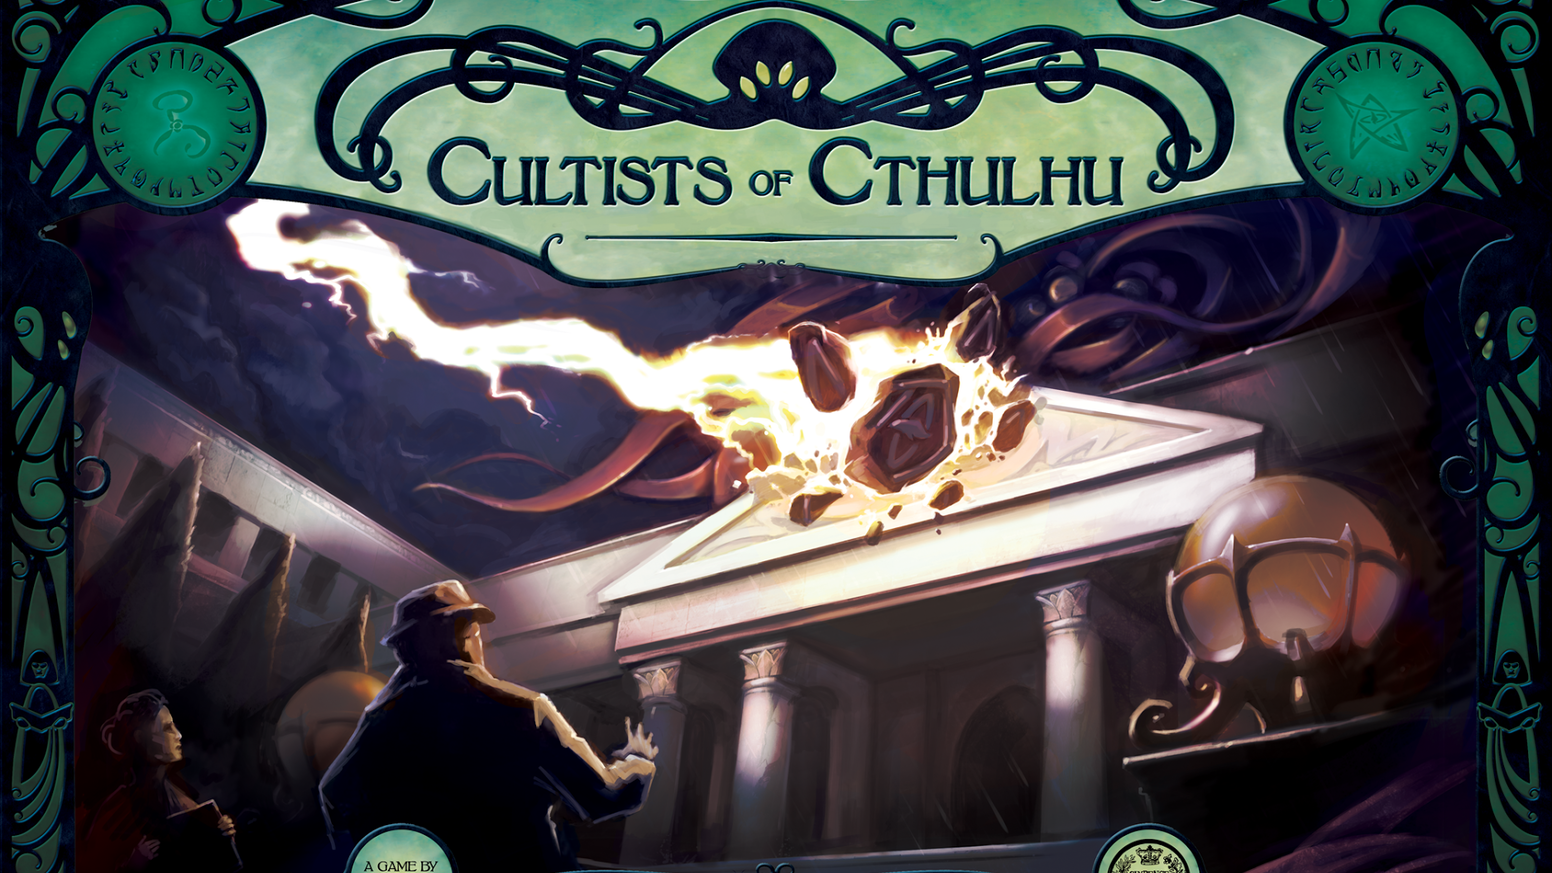 A horror boardgame of teamwork, and betrayal set in H.P. Lovecraft's Miskatonic University, for 1-6 players.